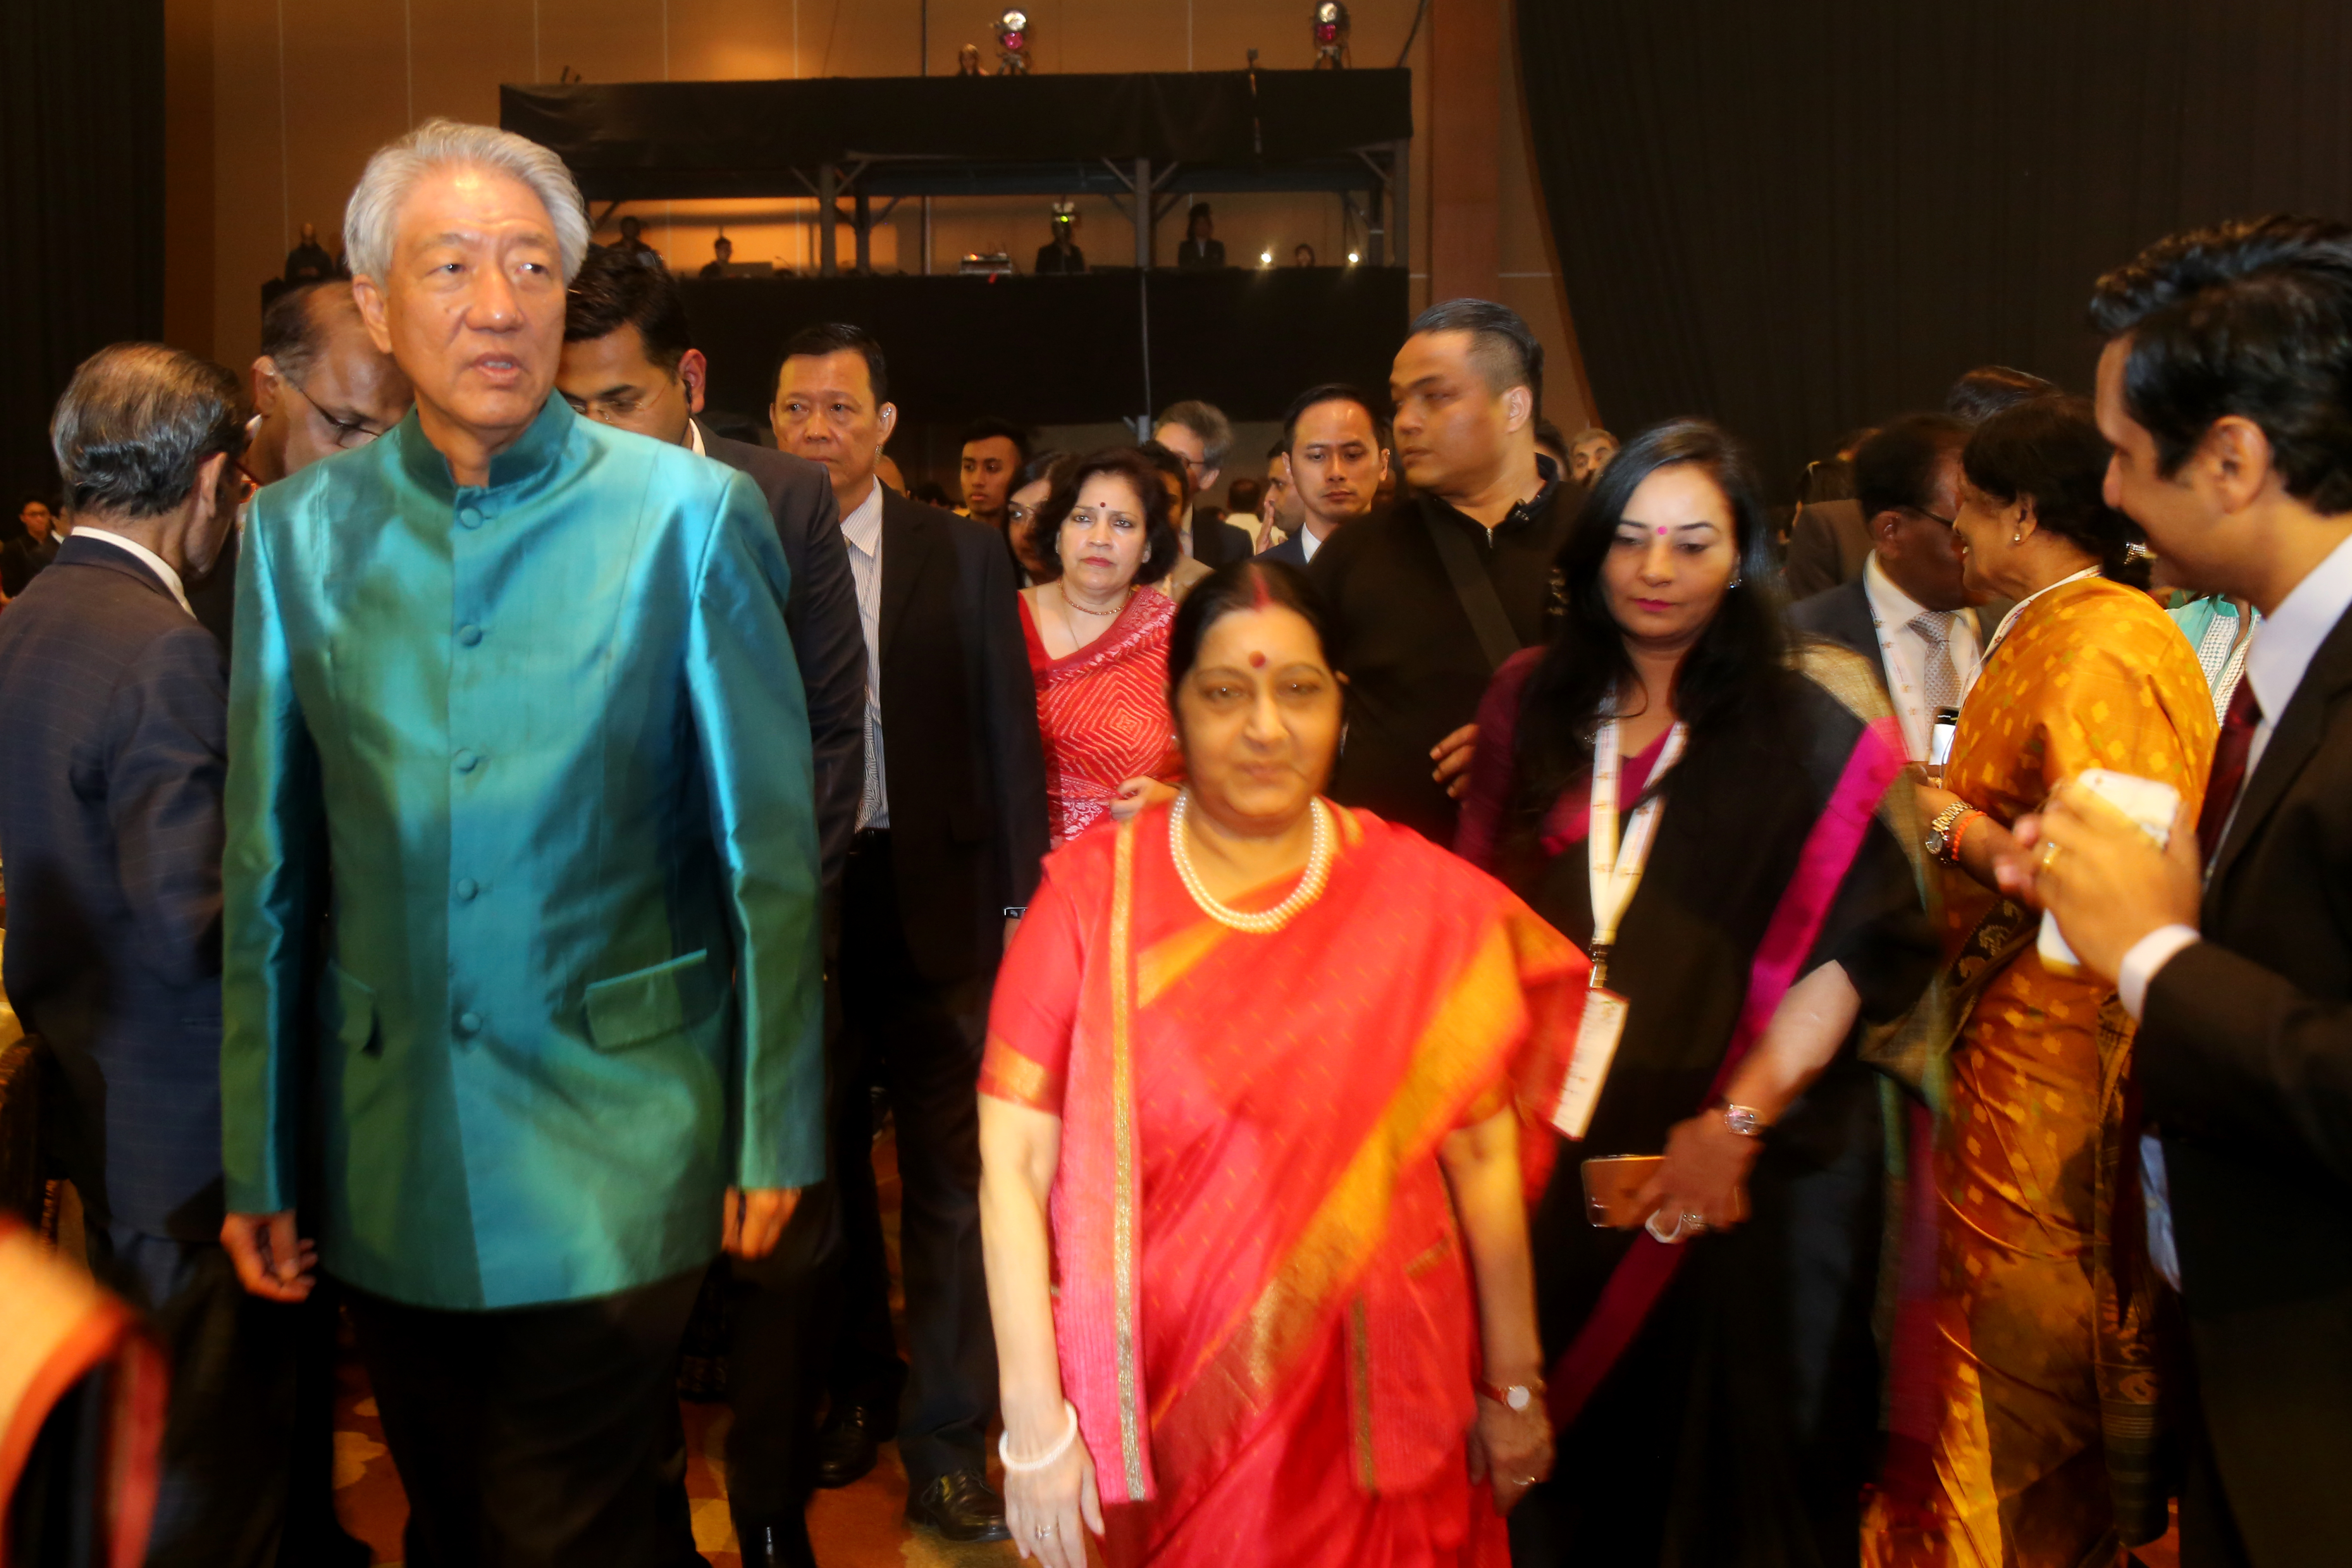 Singapore Deputy PM Teo Chee Hean (left) with EAM Sushma Swaraj at the gala dinner.